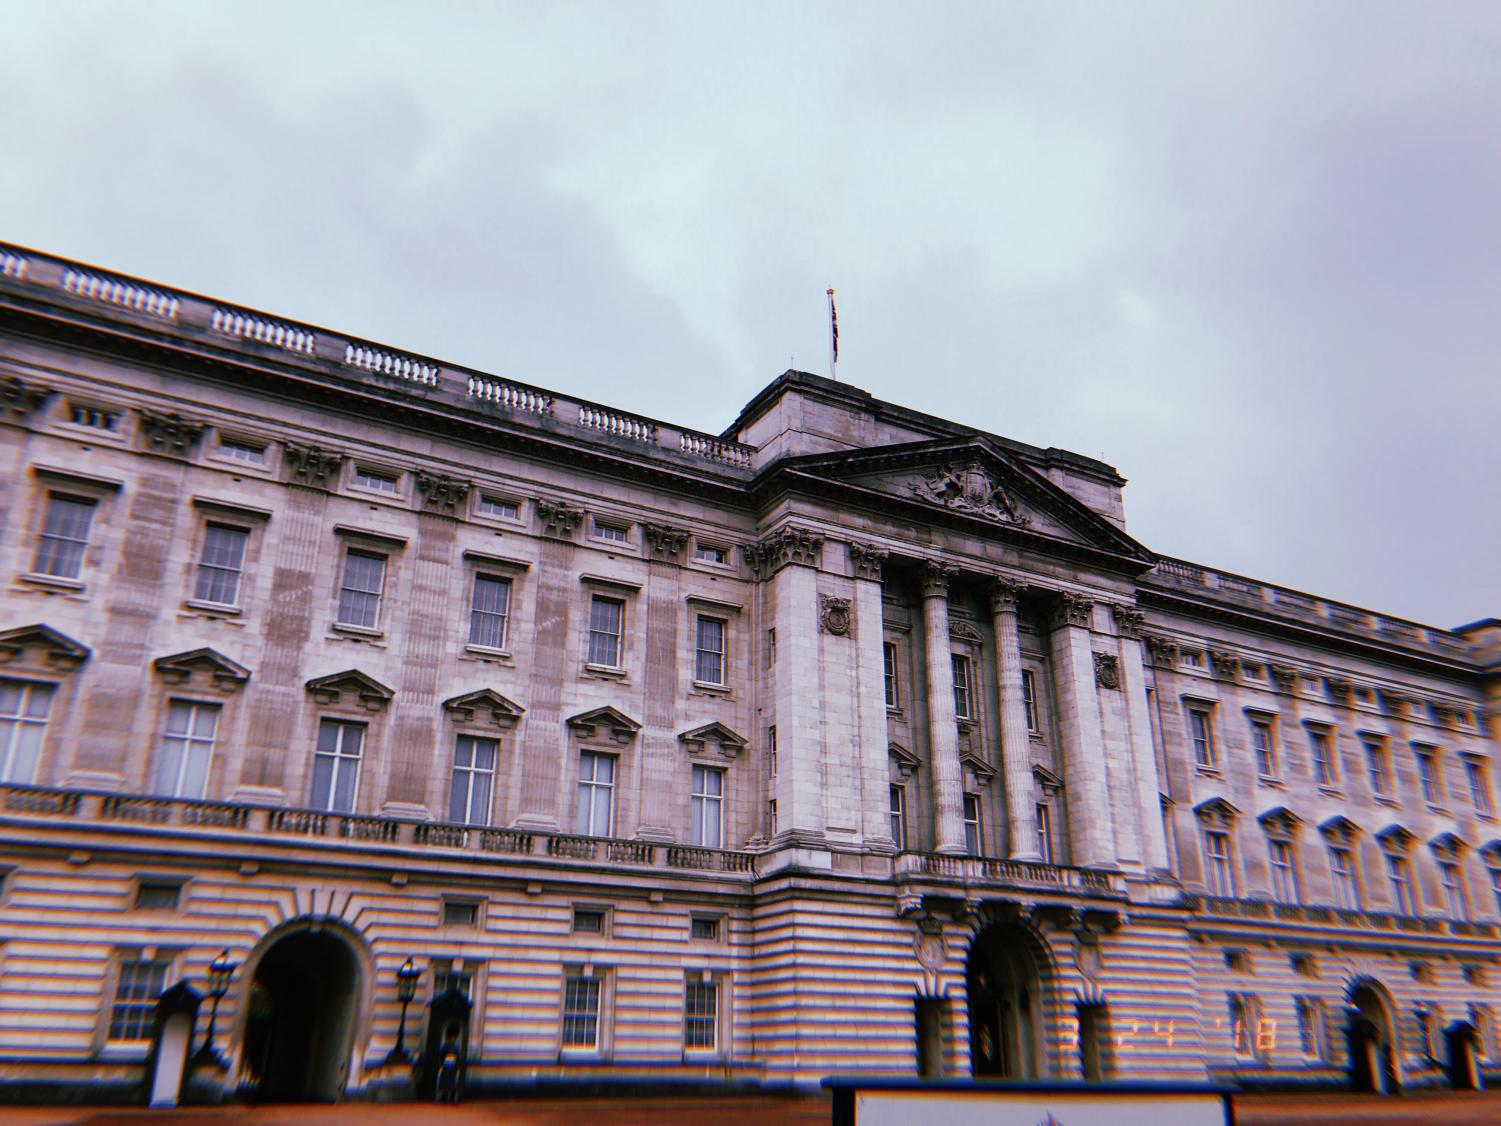 Students+got+to+watch+the+feathery+hatted+guards+outside+of+the+Buckingham+Palace%2C+where+the+royals+reside.+Unfortunately%2C+the+changing+of+the+guard+did+not+take+place+that+day%2C+but+it+was+still+a+beautiful+and+interesting+sight+to+see.+